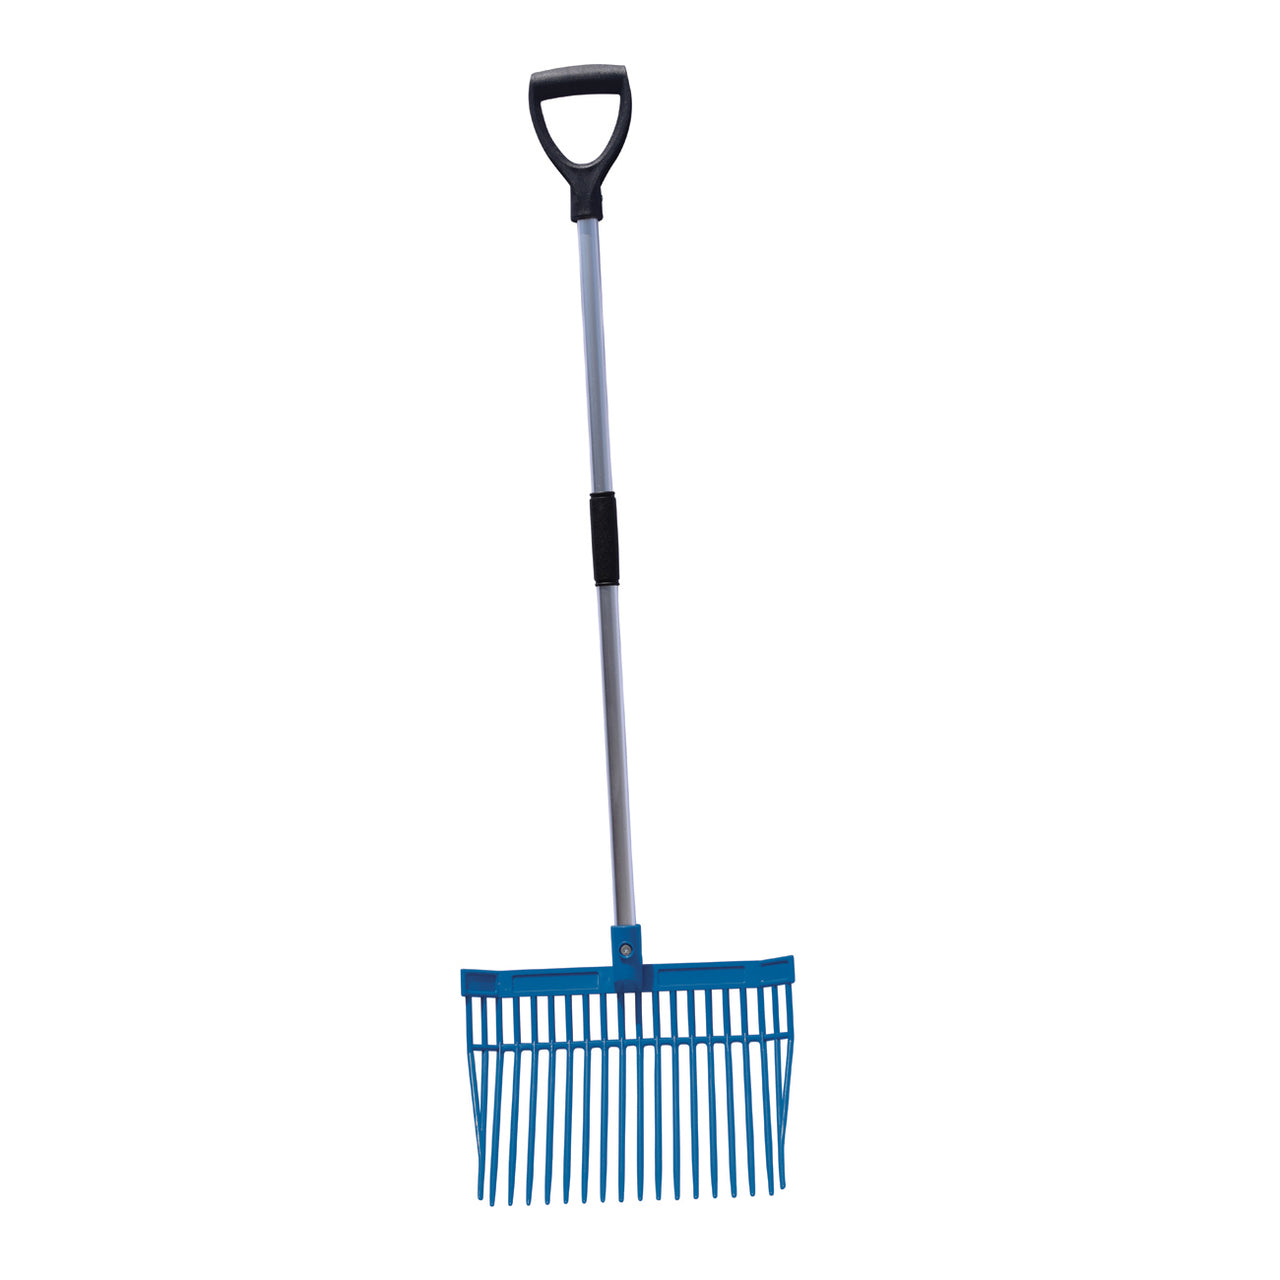 Tuff Stuff Hd Square Barn Fork (Blue) - Shovels Rakes Manure Scoops Forks Stirrer Twine Cutter Tuff Stuff - Canada